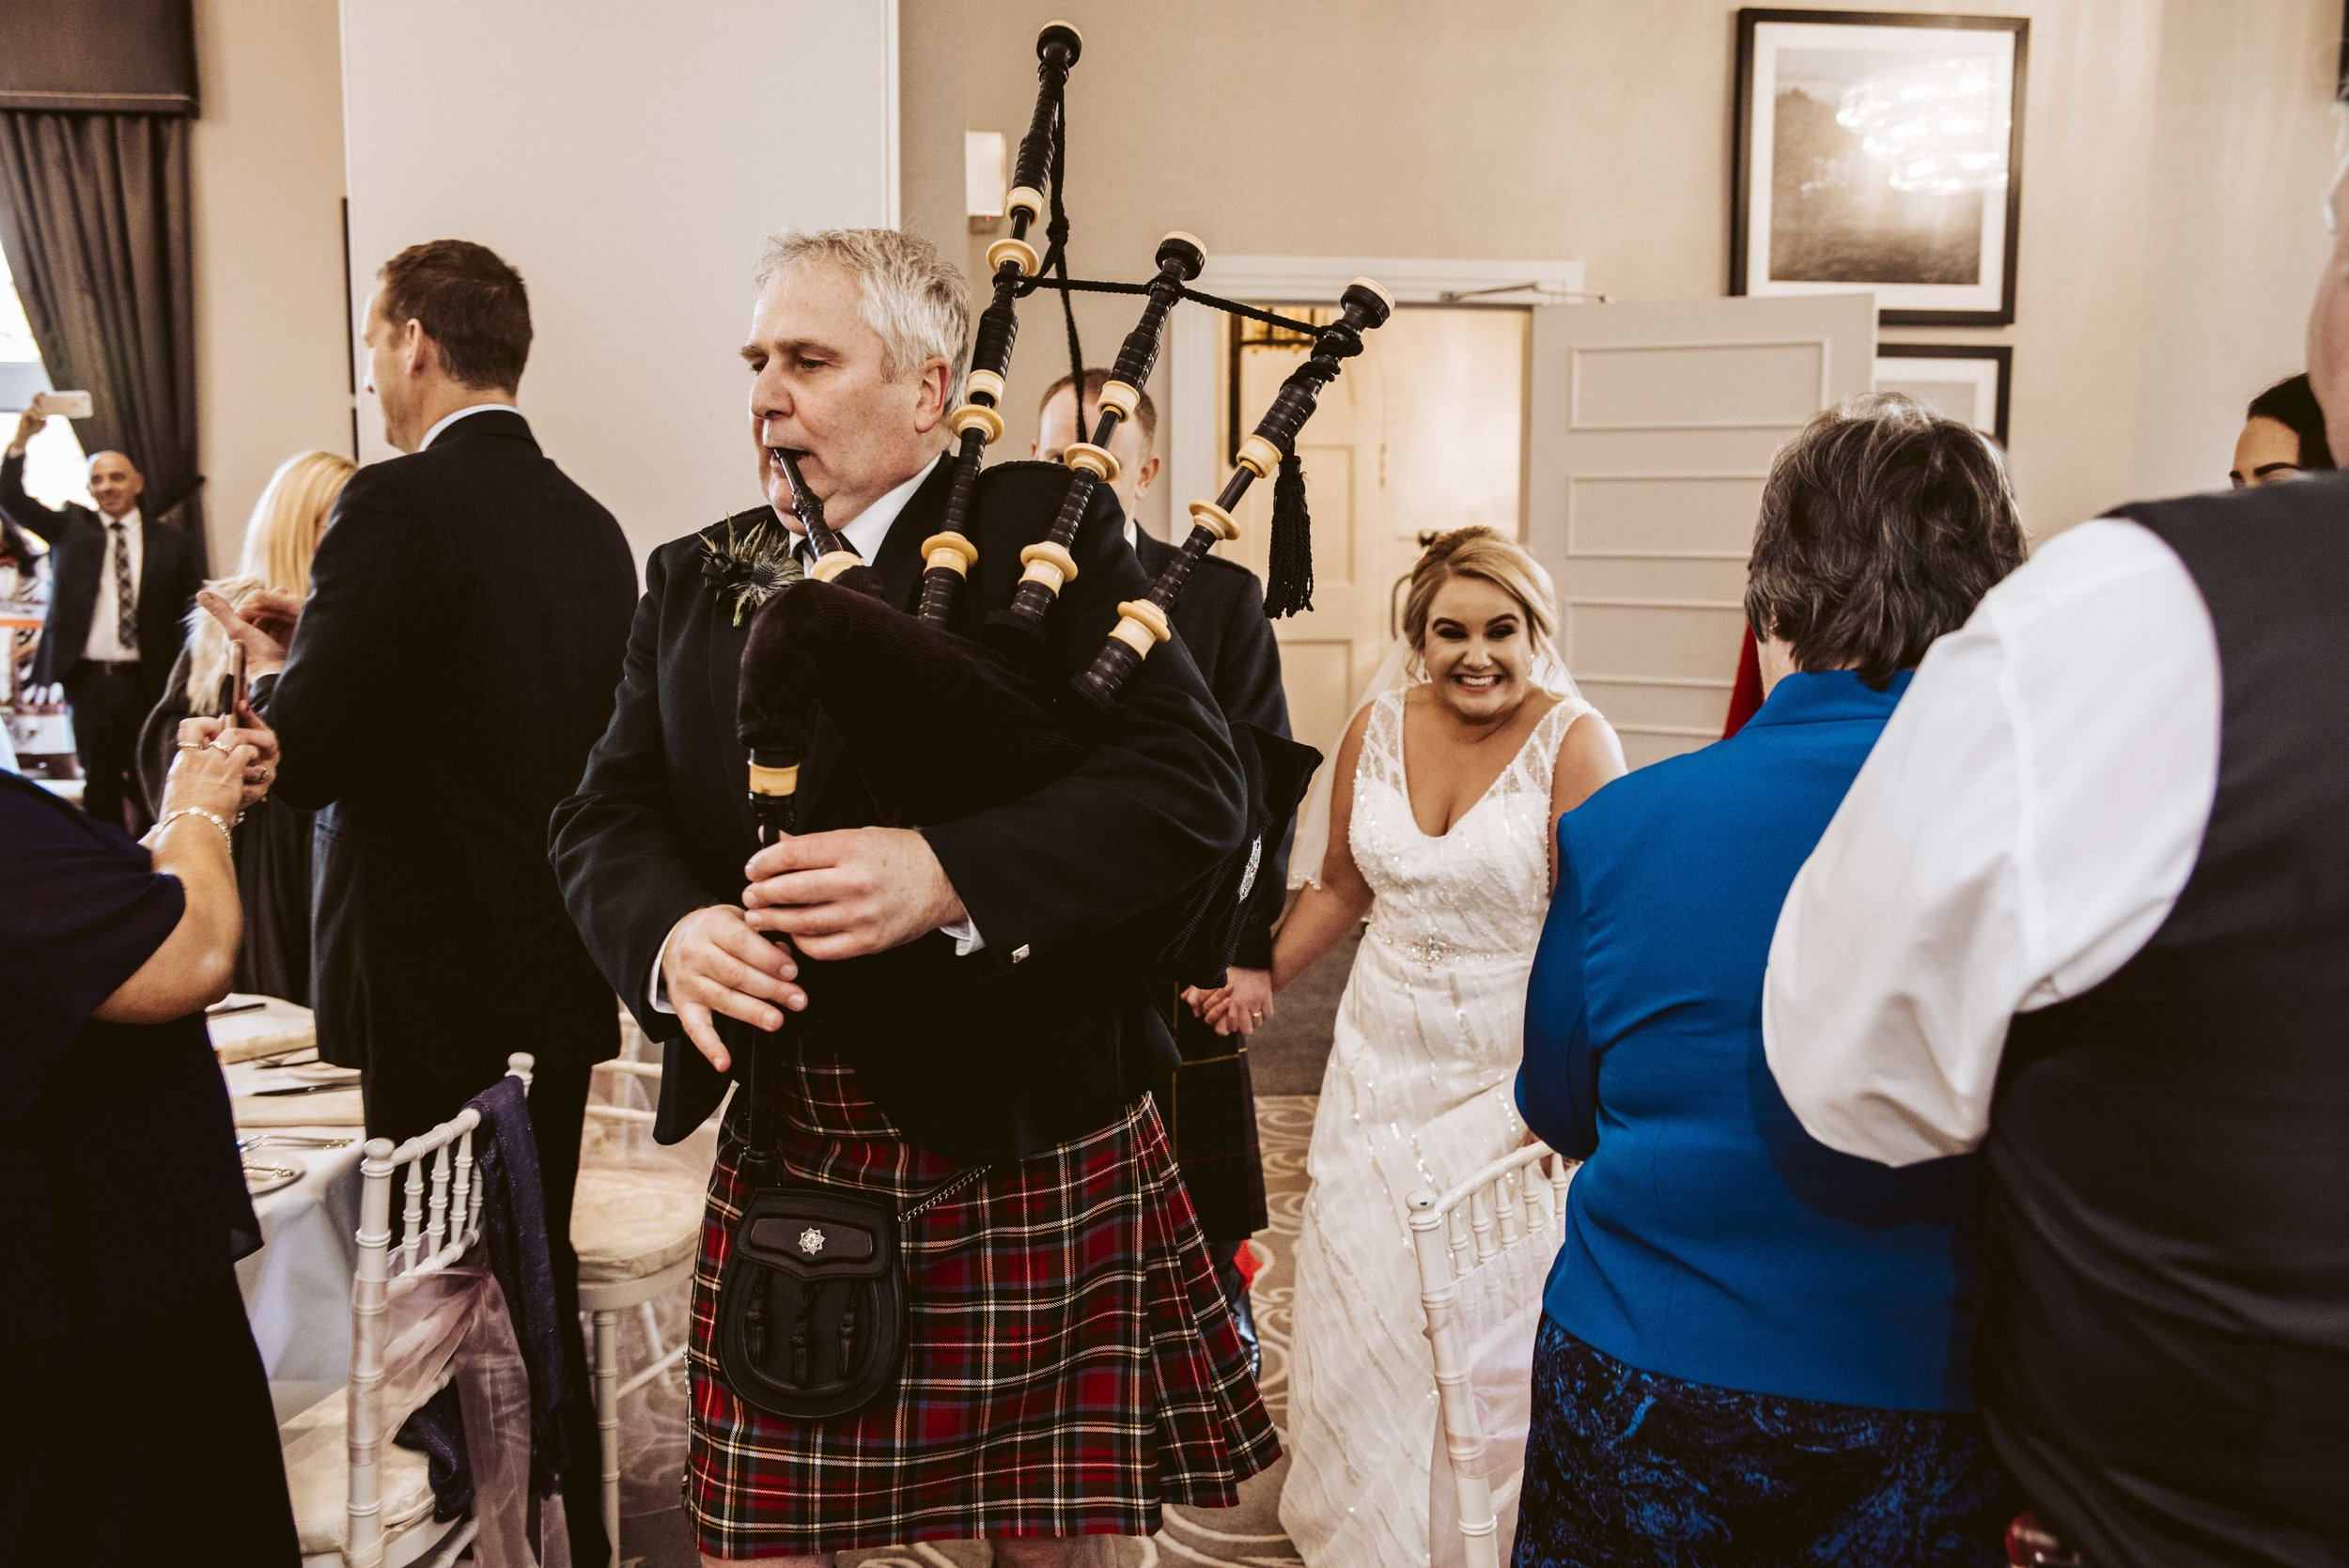 Mar Hall Wedding 2018, Haminsh & Emma McEwan 52.JPG